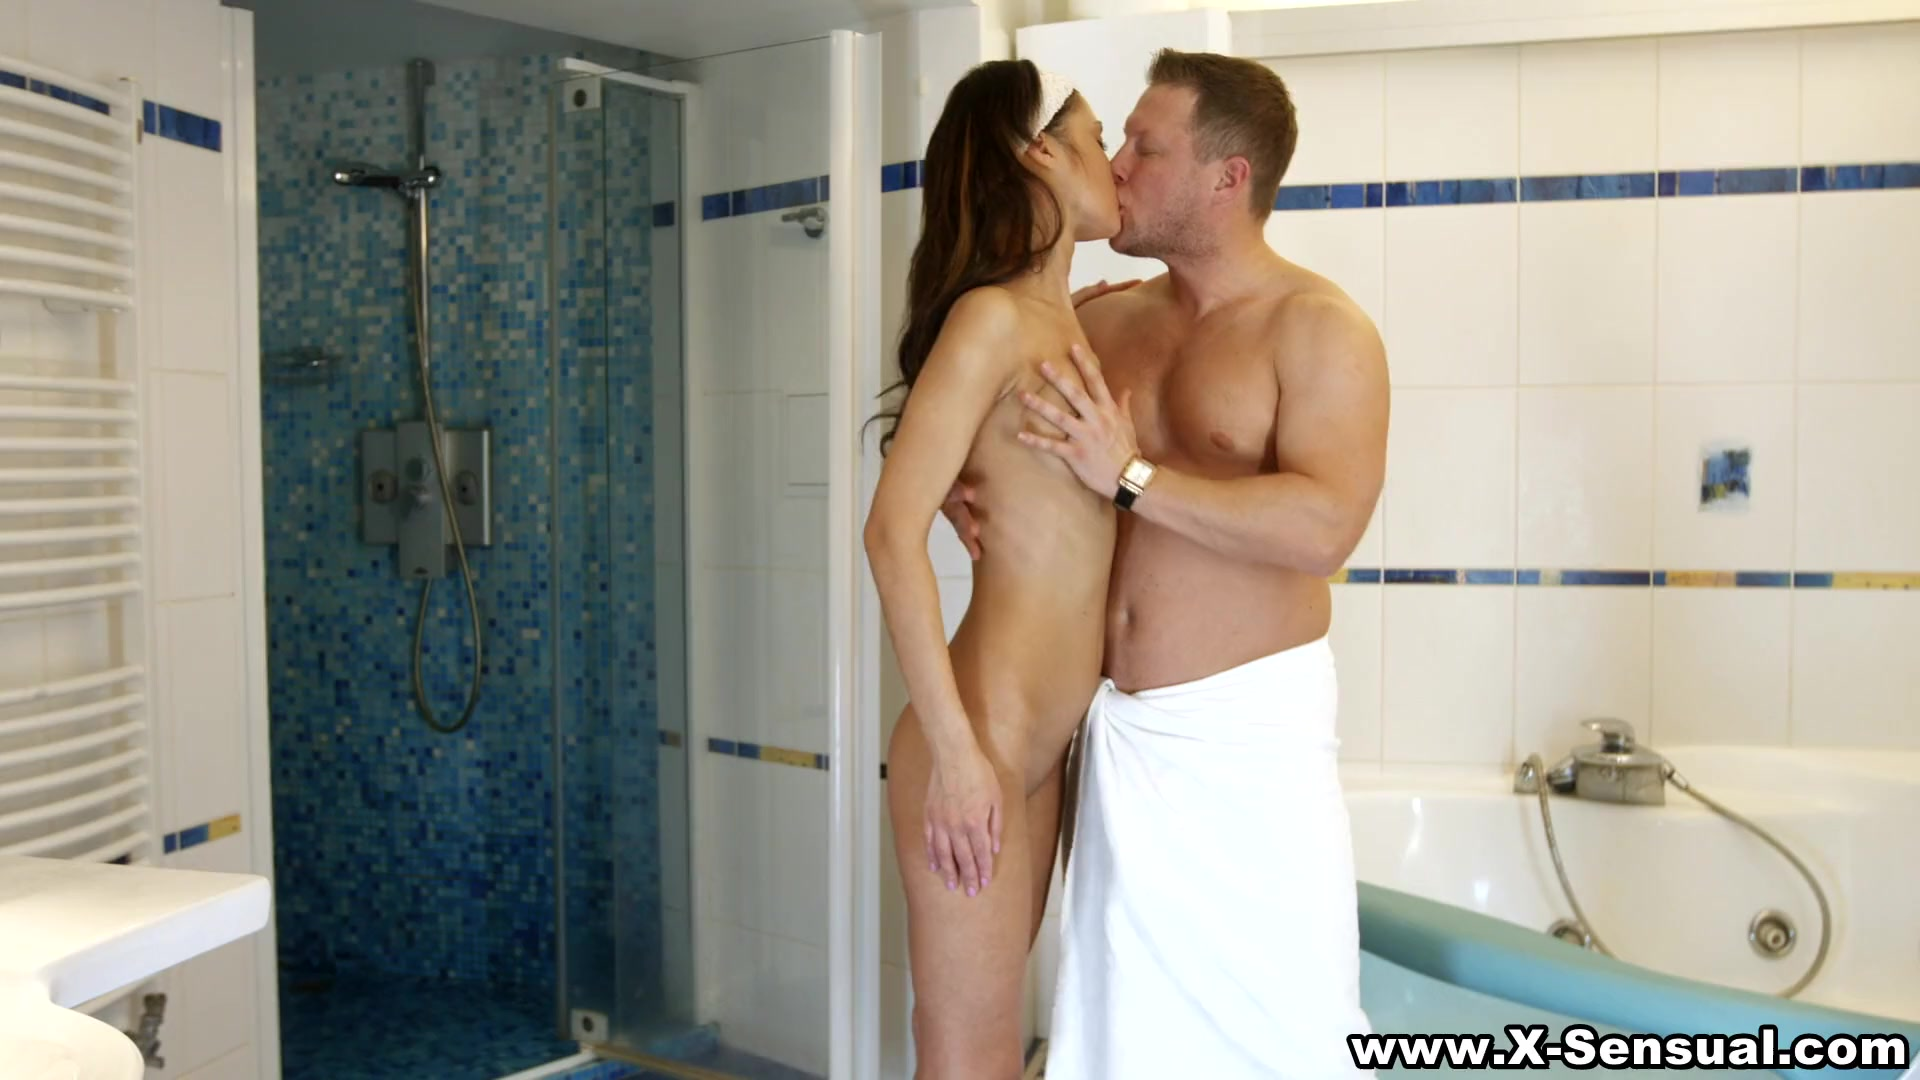 Preview 2 of X-sensual - Anal In A Jacuzzi